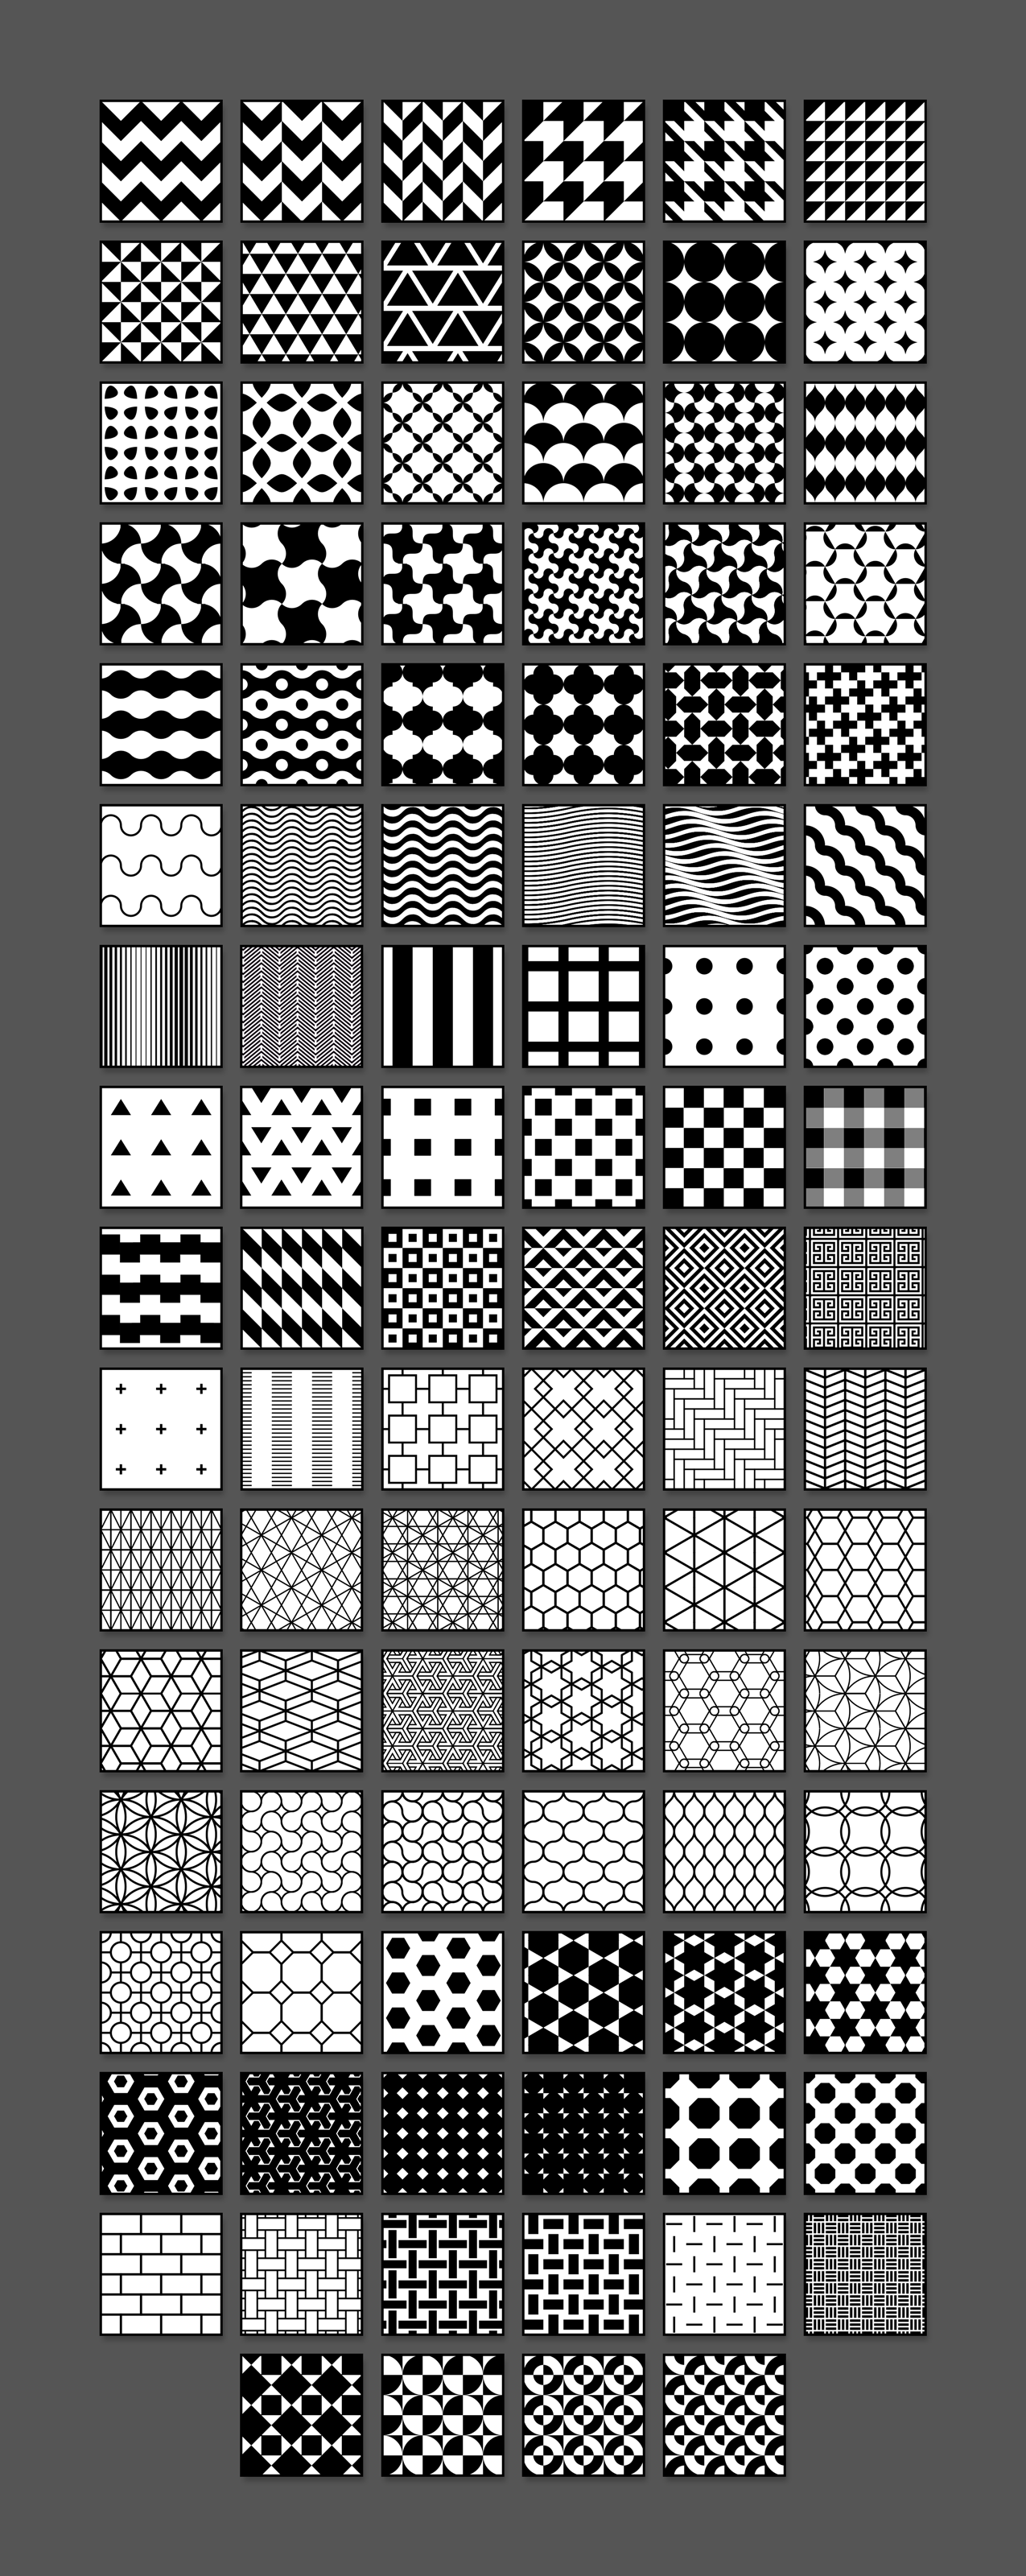 Grid of all 100 Seamless Patterns